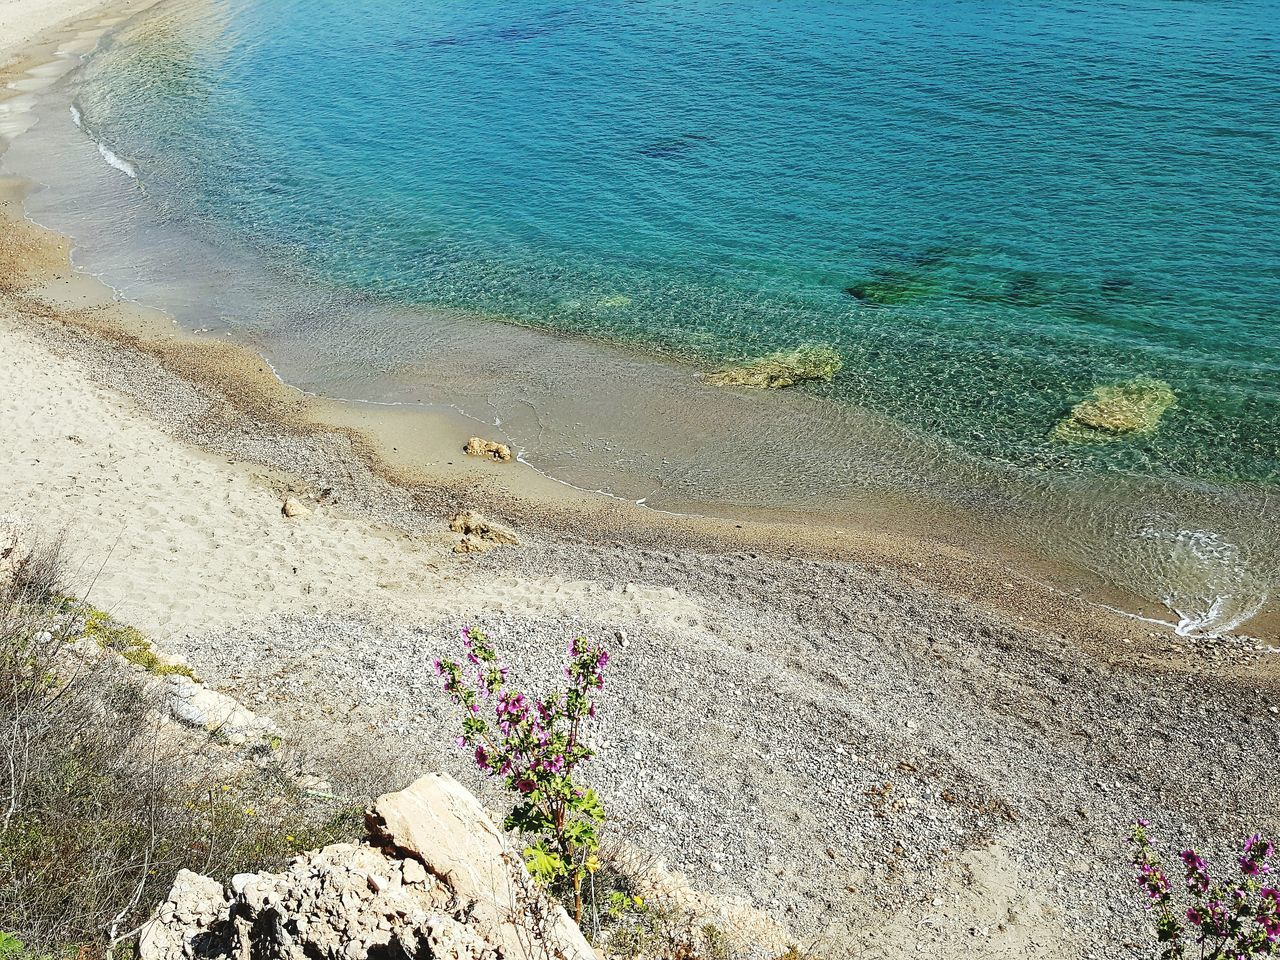 beach, high angle view, beauty in nature, sea, nature, sand, water, day, outdoors, scenics, tranquility, tranquil scene, no people, horizon over water, flower, sky